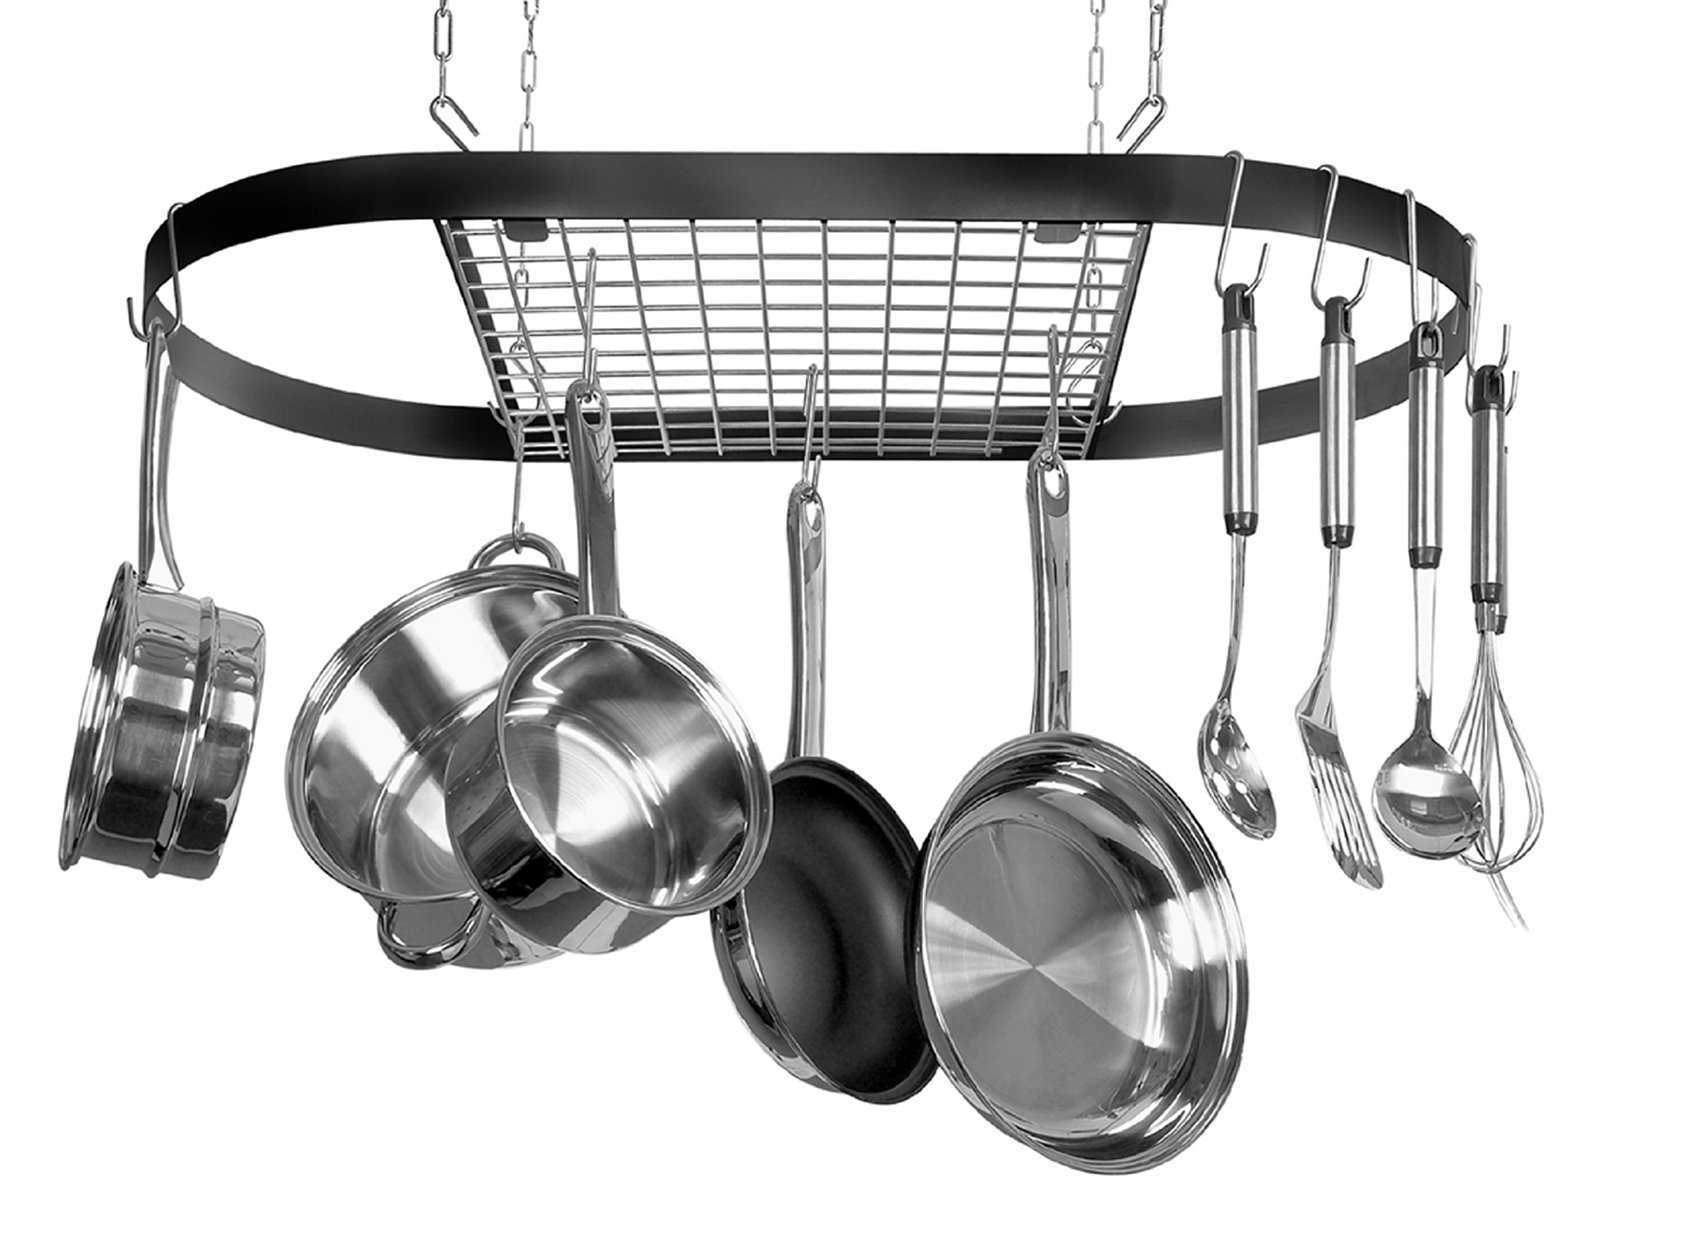 Kinetic Classicor Series Wrought-Iron Oval Pot Rack 12021 by Kinetic (Image #1)